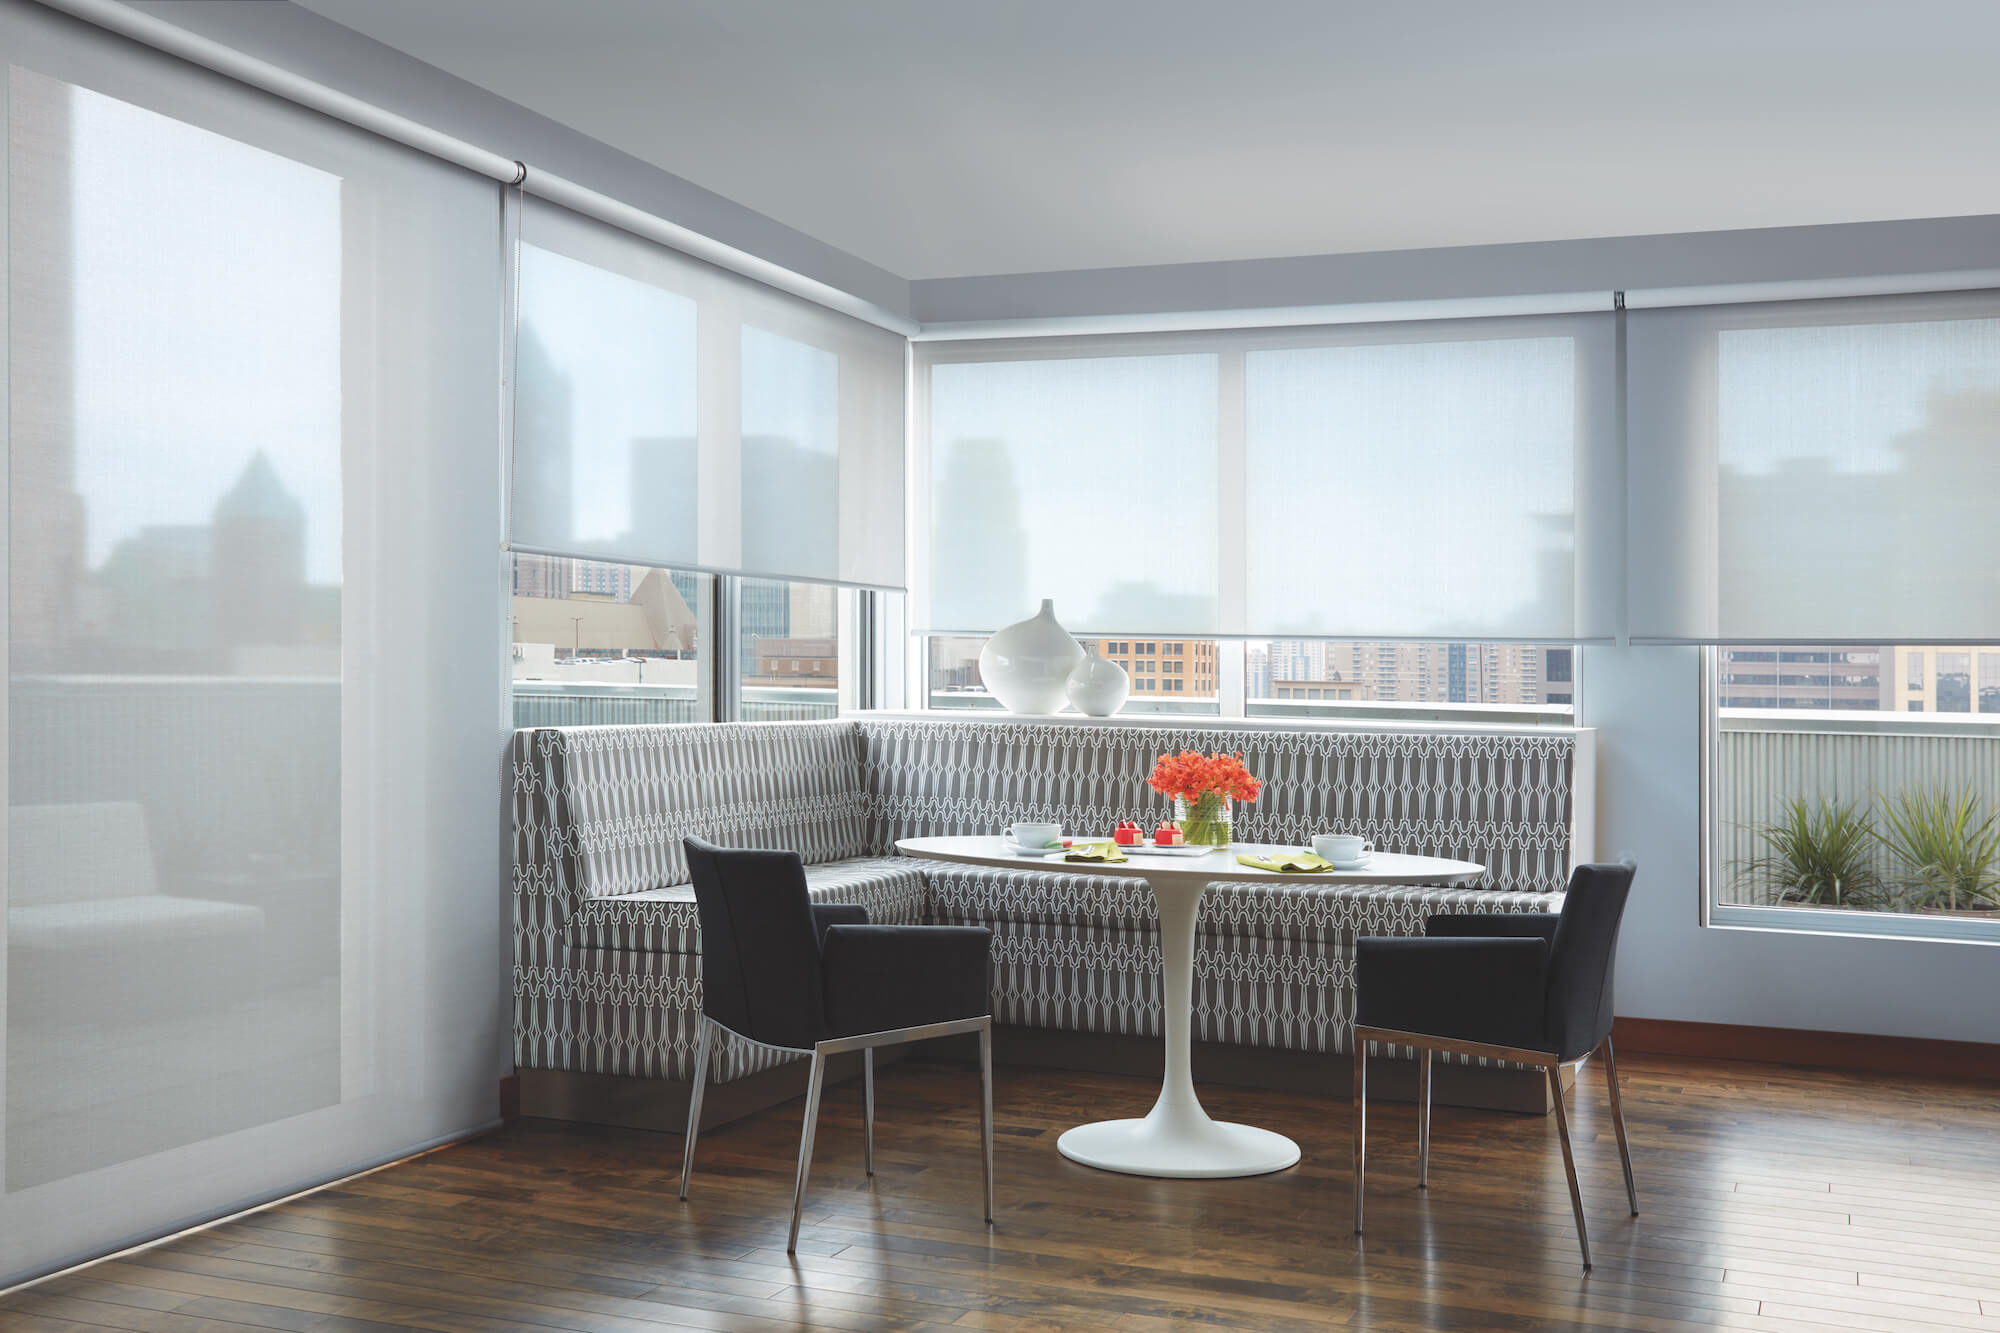 Designer Screen Shades on wall of windows looking out to city-front view